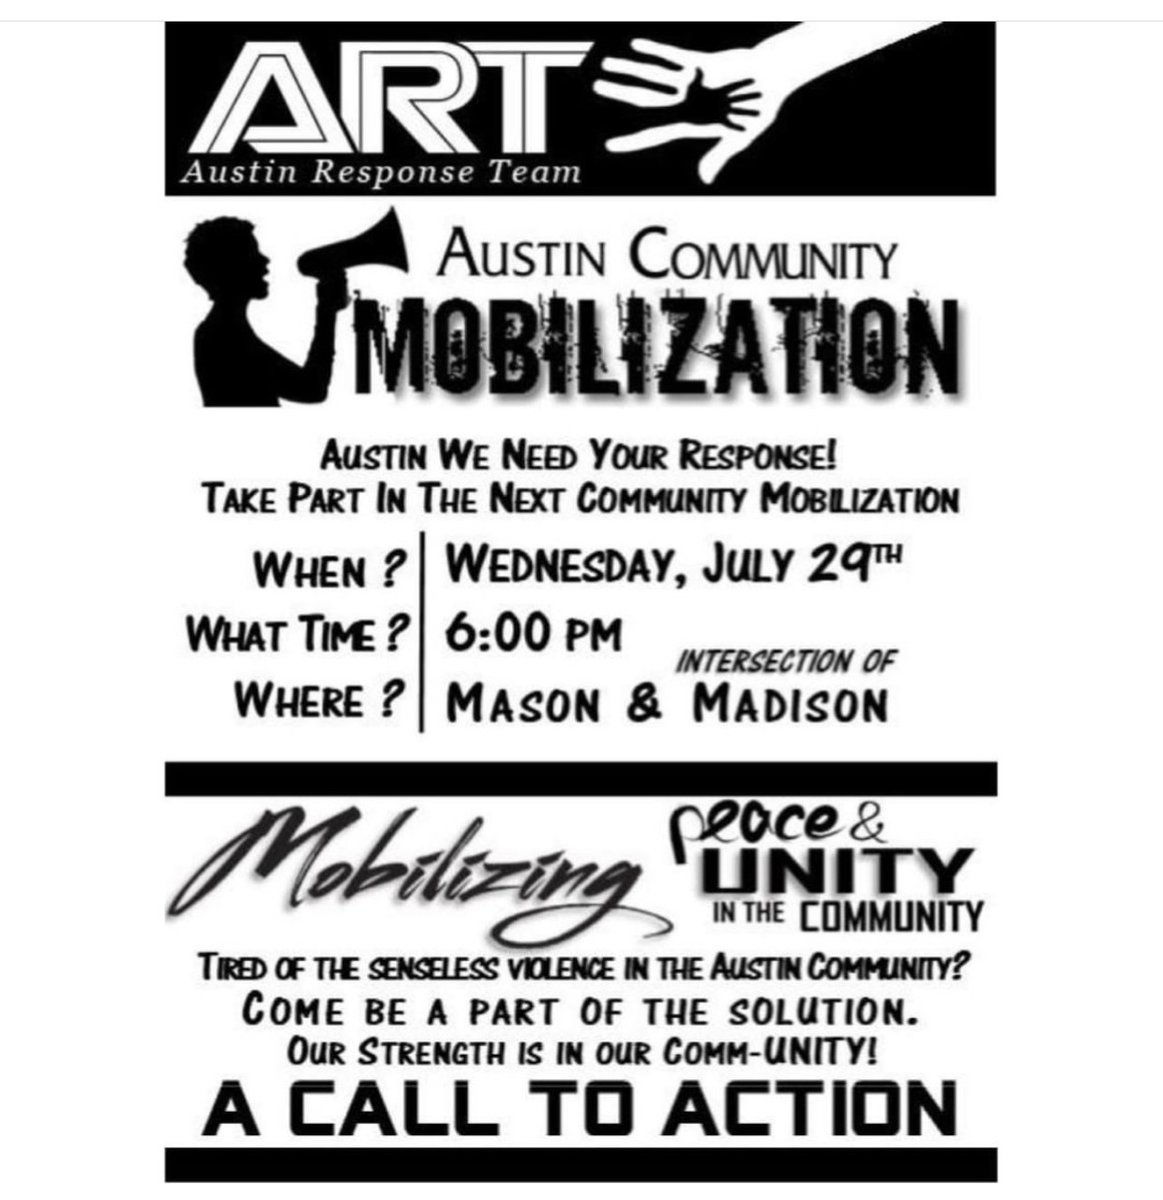 Today @ChicagoCAPS15 with Austin Response Team (ART) hosted The Austin Community Mobilization at Mason & Madison. Area 4 Cart Team, #1STV @jr_bady, @CCSOPIO, @cookcountysao, Summer Mobile,& other community stakeholders all assembled for mobilizing peace & unity in the community.